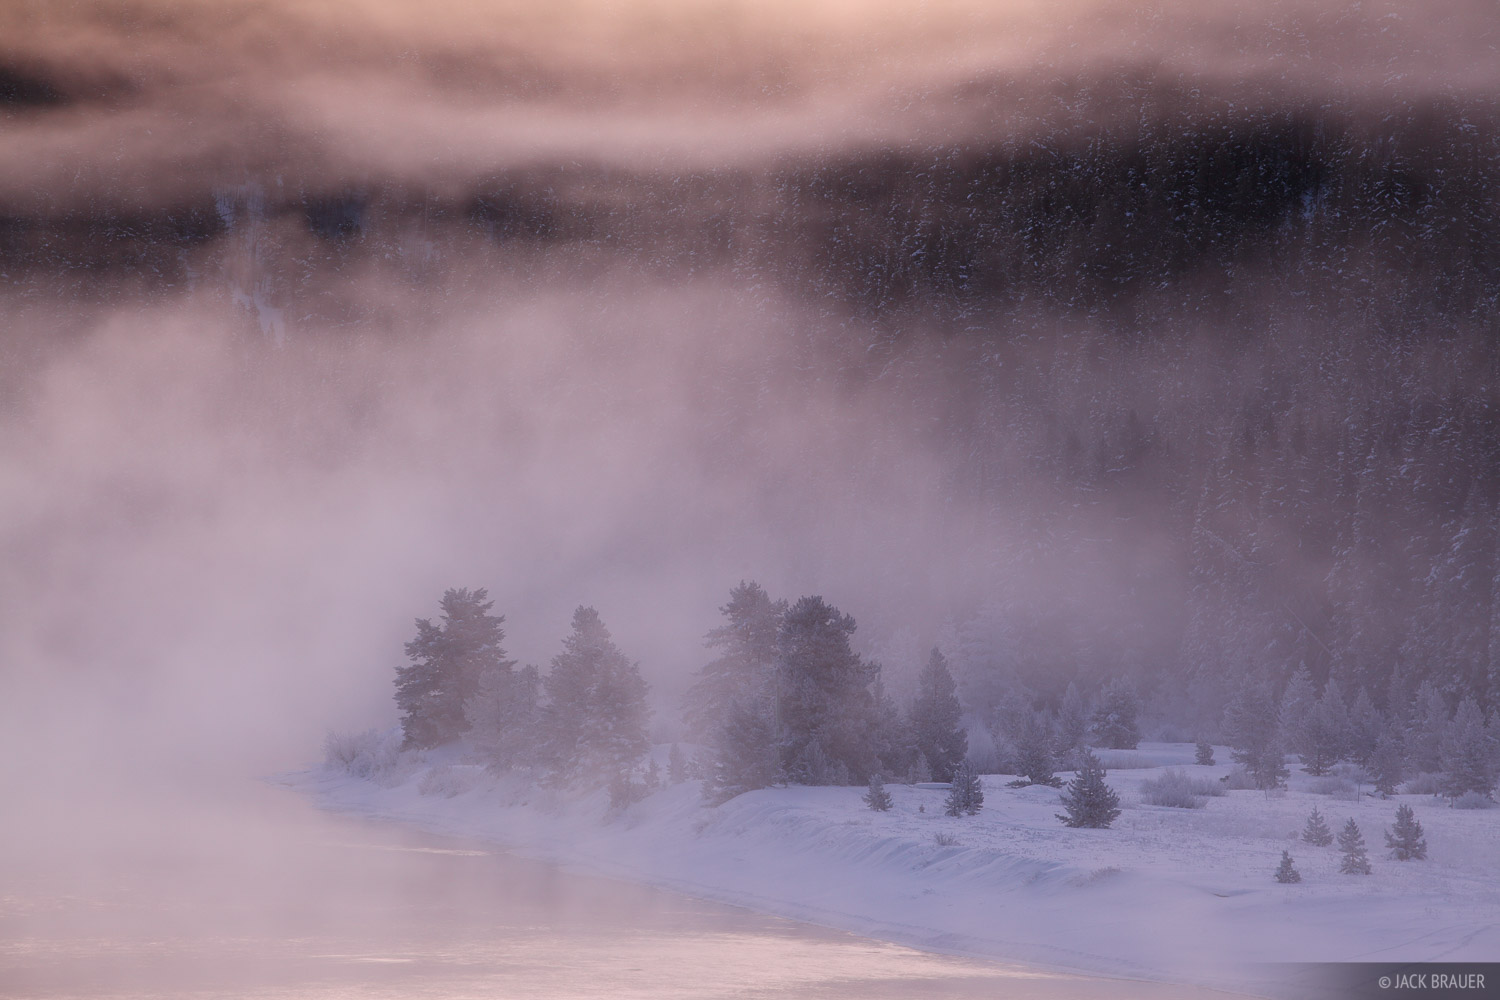 Snake River, Jackson Hole, Wyoming, mist, winter, Grand Teton National Park, photo